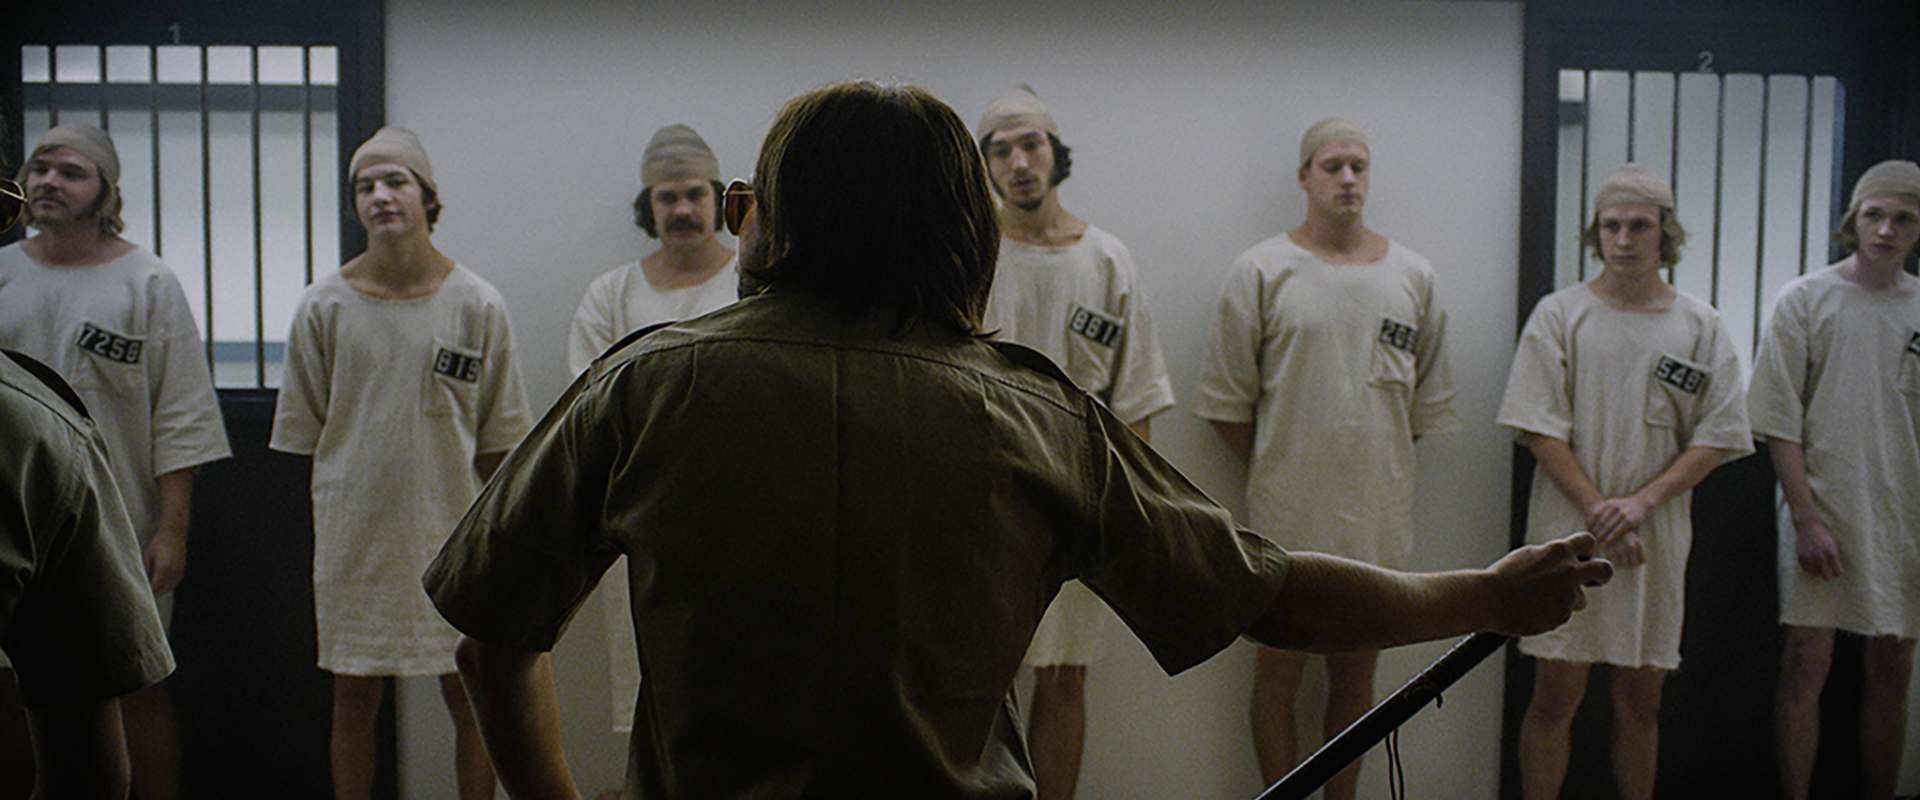 The Stanford Prison Experiment background 2